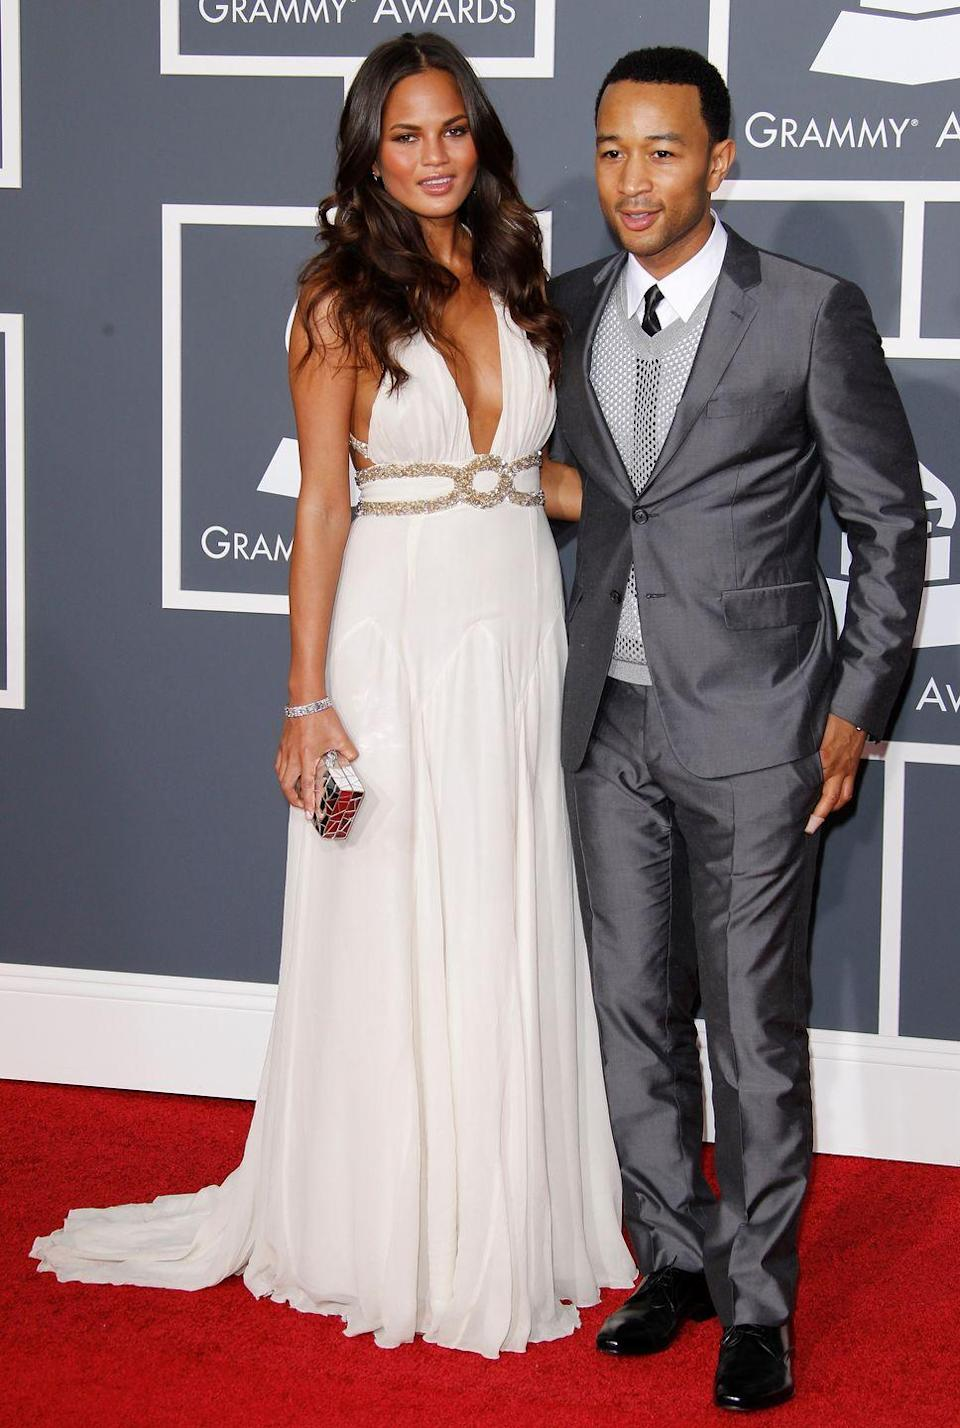 <p>The fresh-faced couple at the Grammy awards. </p>